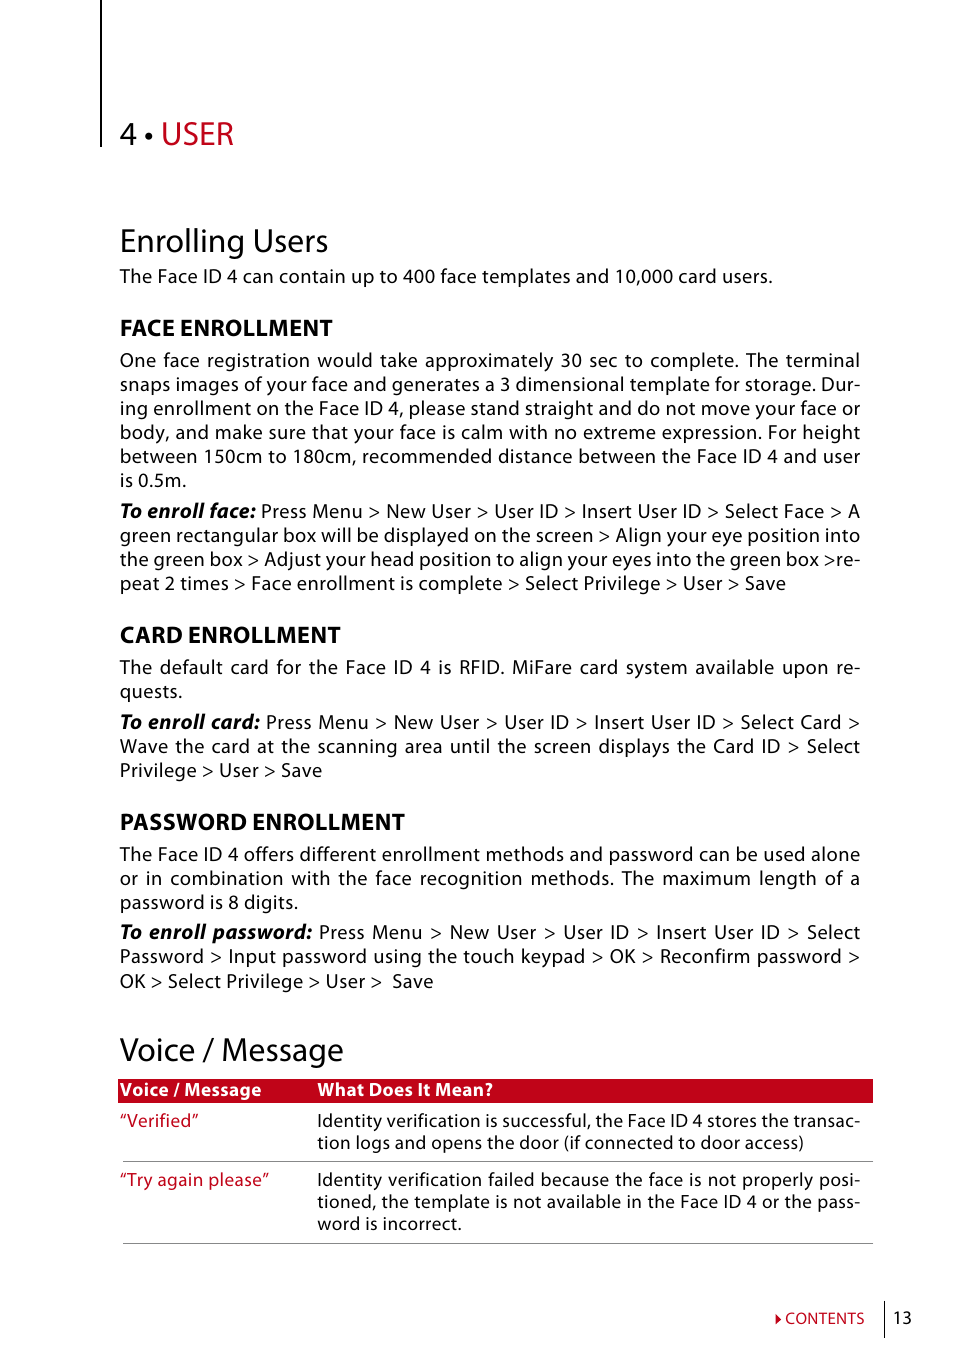 User enrolling users, Voice / message | FingerTec Face ID 4 Manual